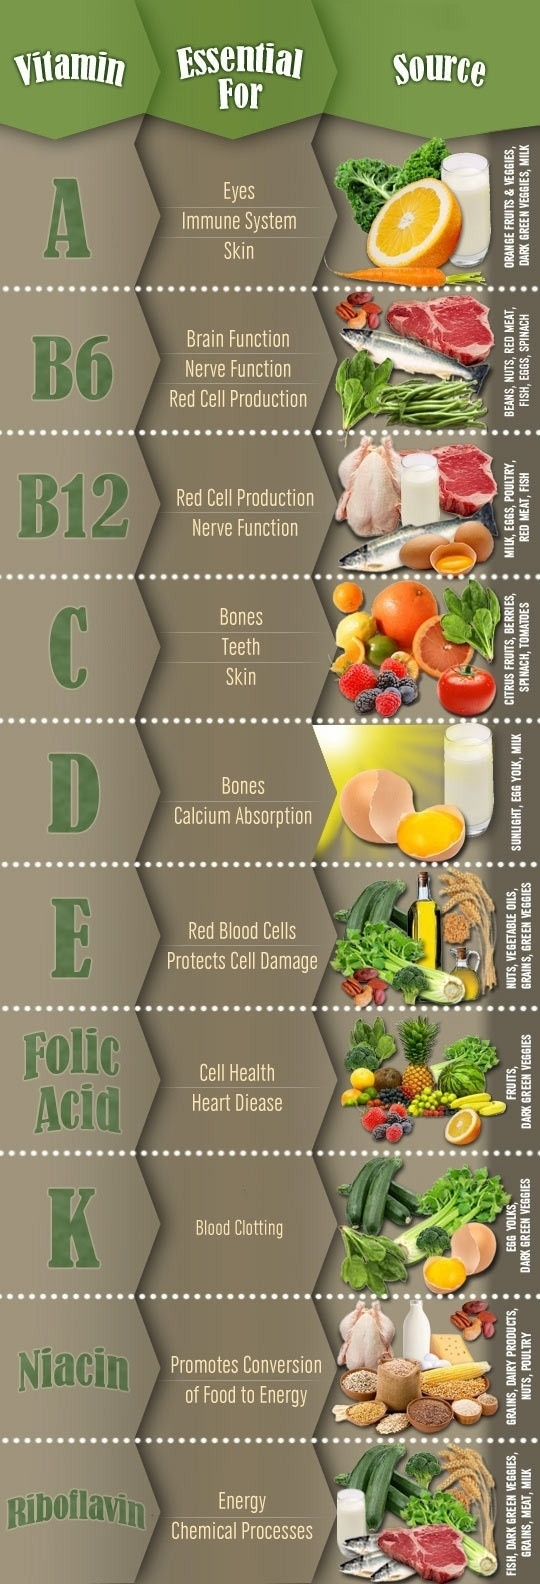 The Why and Where of Vitamins